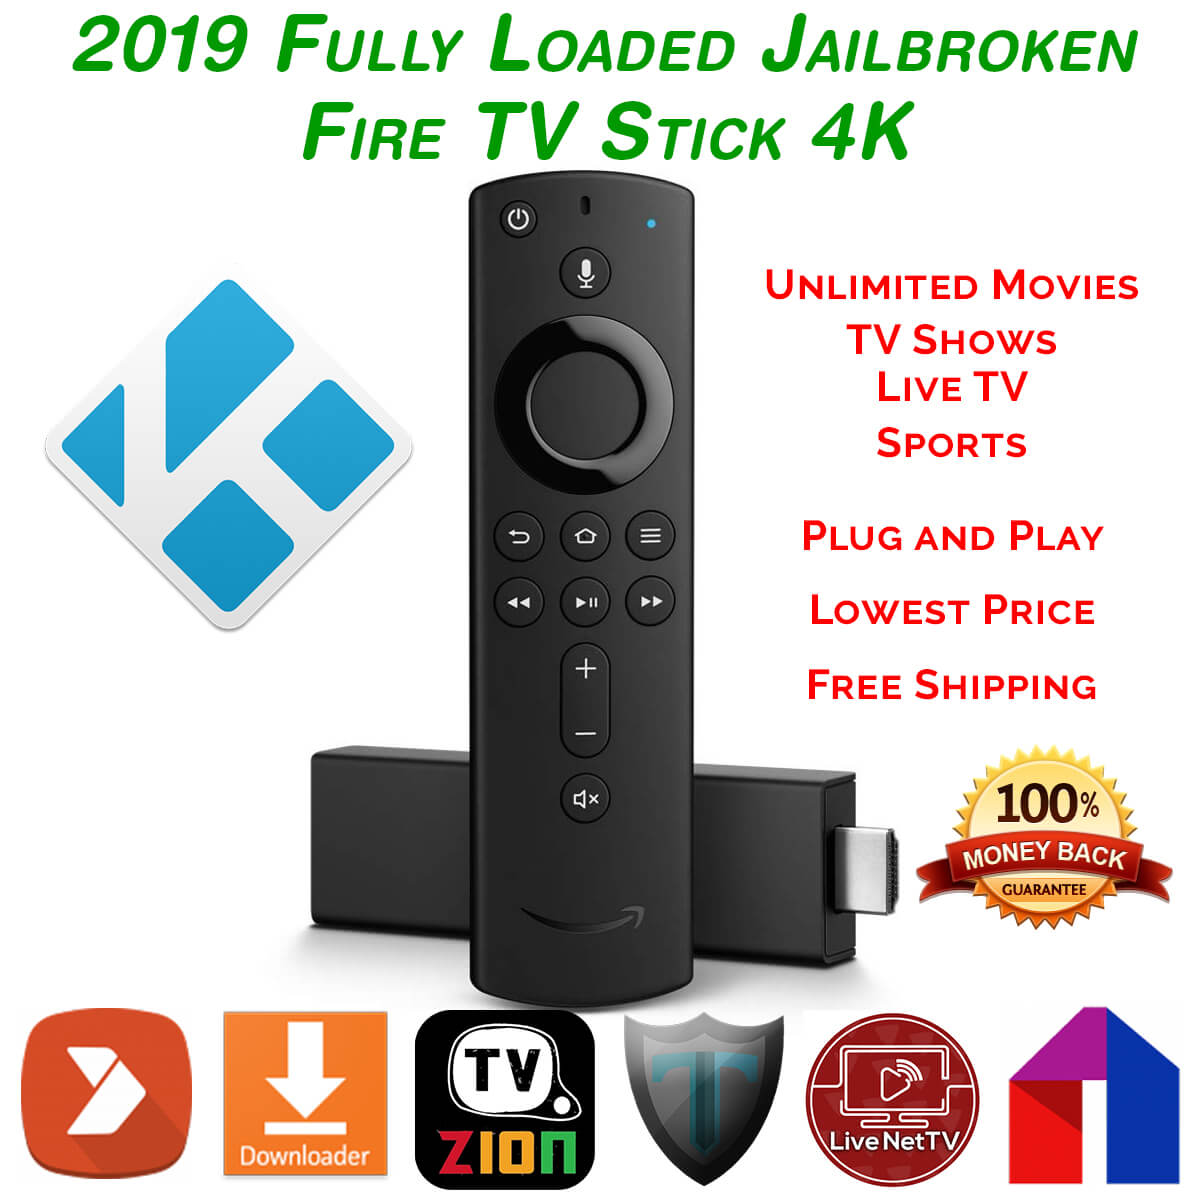 Jailbroken Amazon Fire TV Stick with Fully Loaded Kodi 18 - TVGeek Build